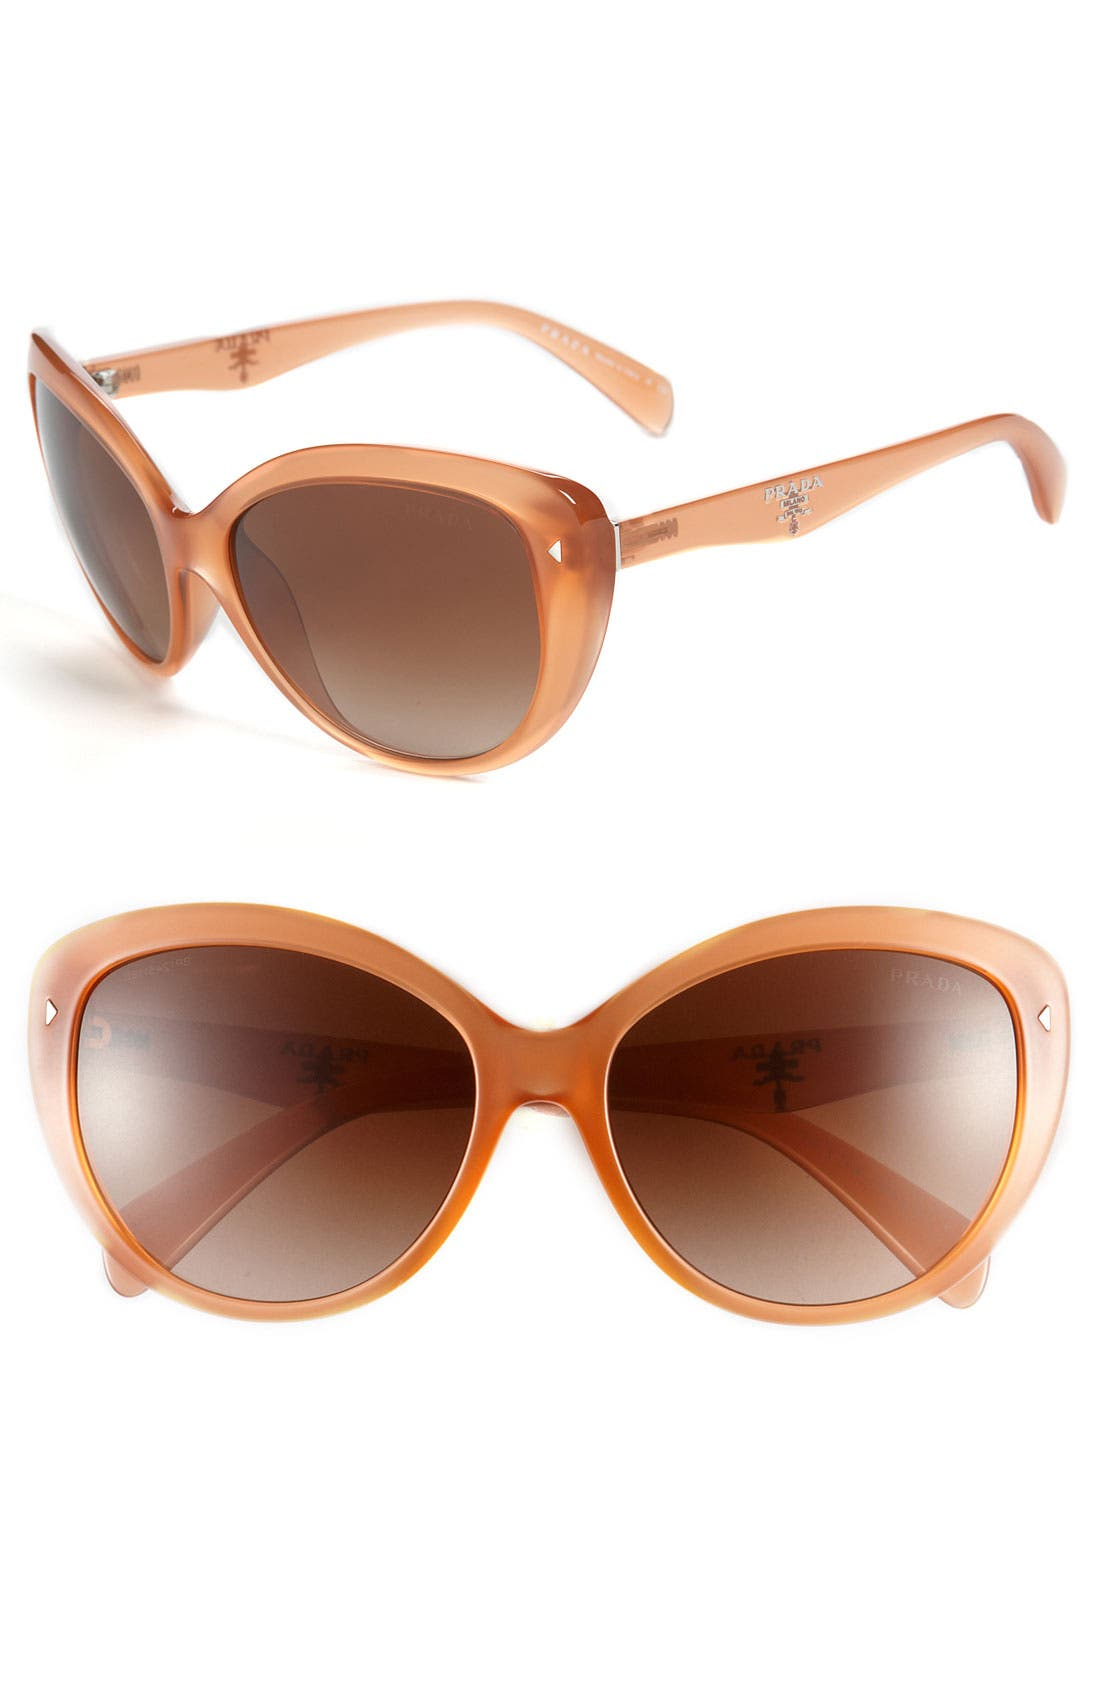 Alternate Image 1 Selected - Prada Retro Sunglasses